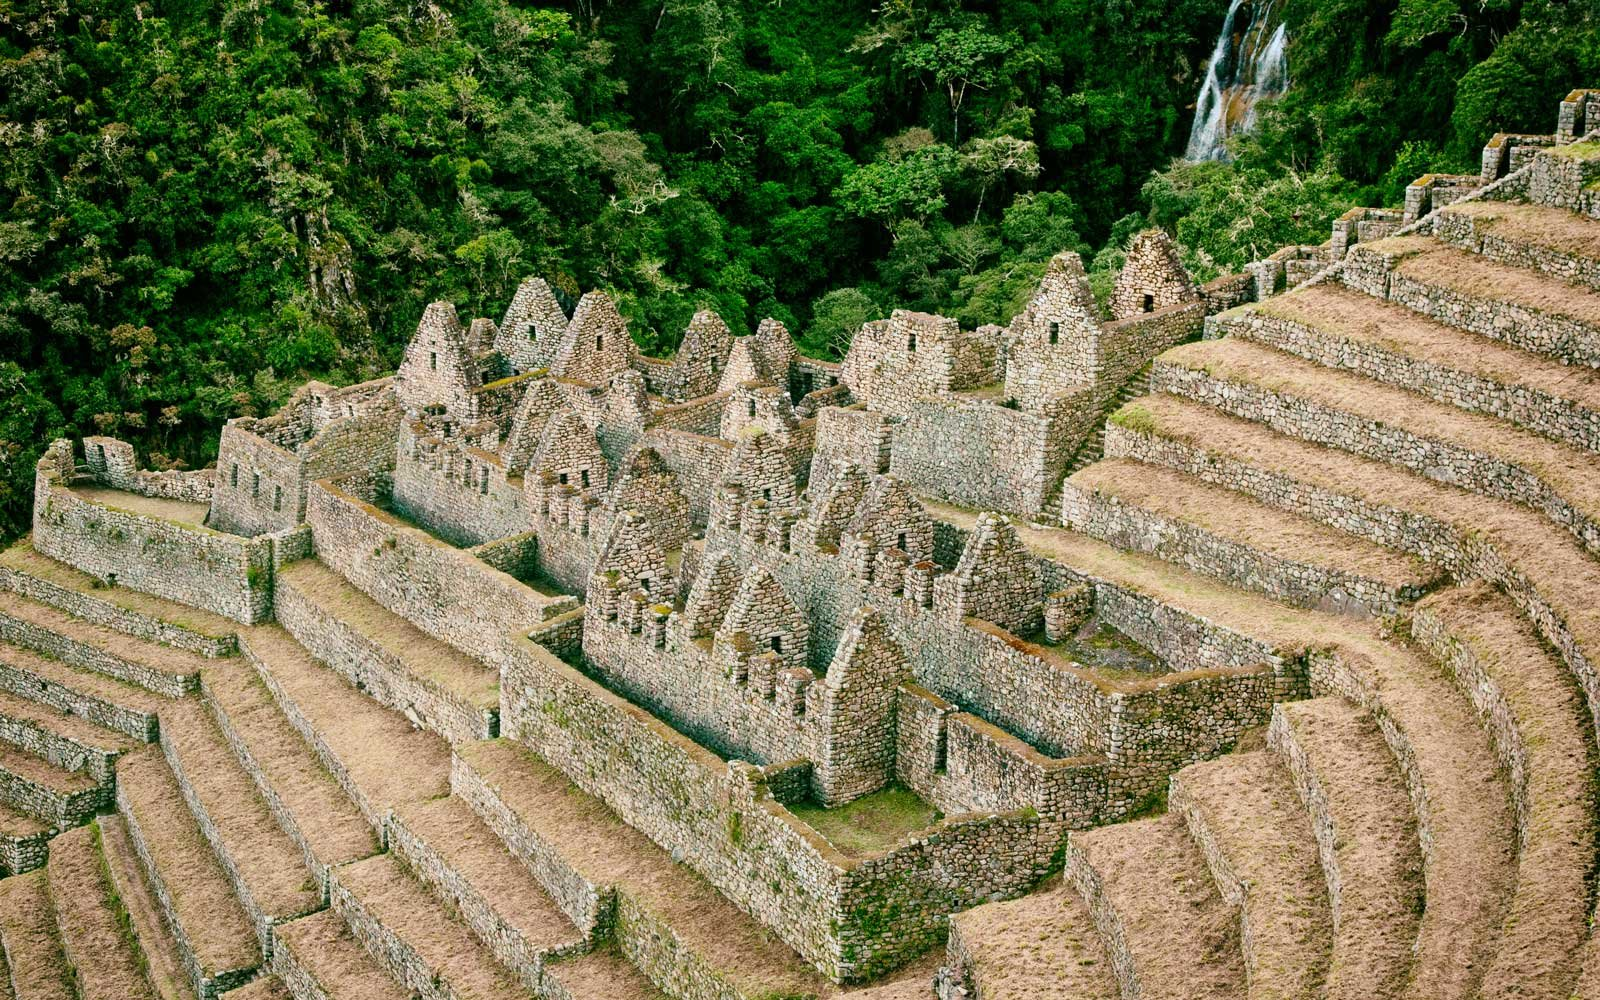 Ruins of an ancient town on the Inca Trail to Machu Picchu, Peru